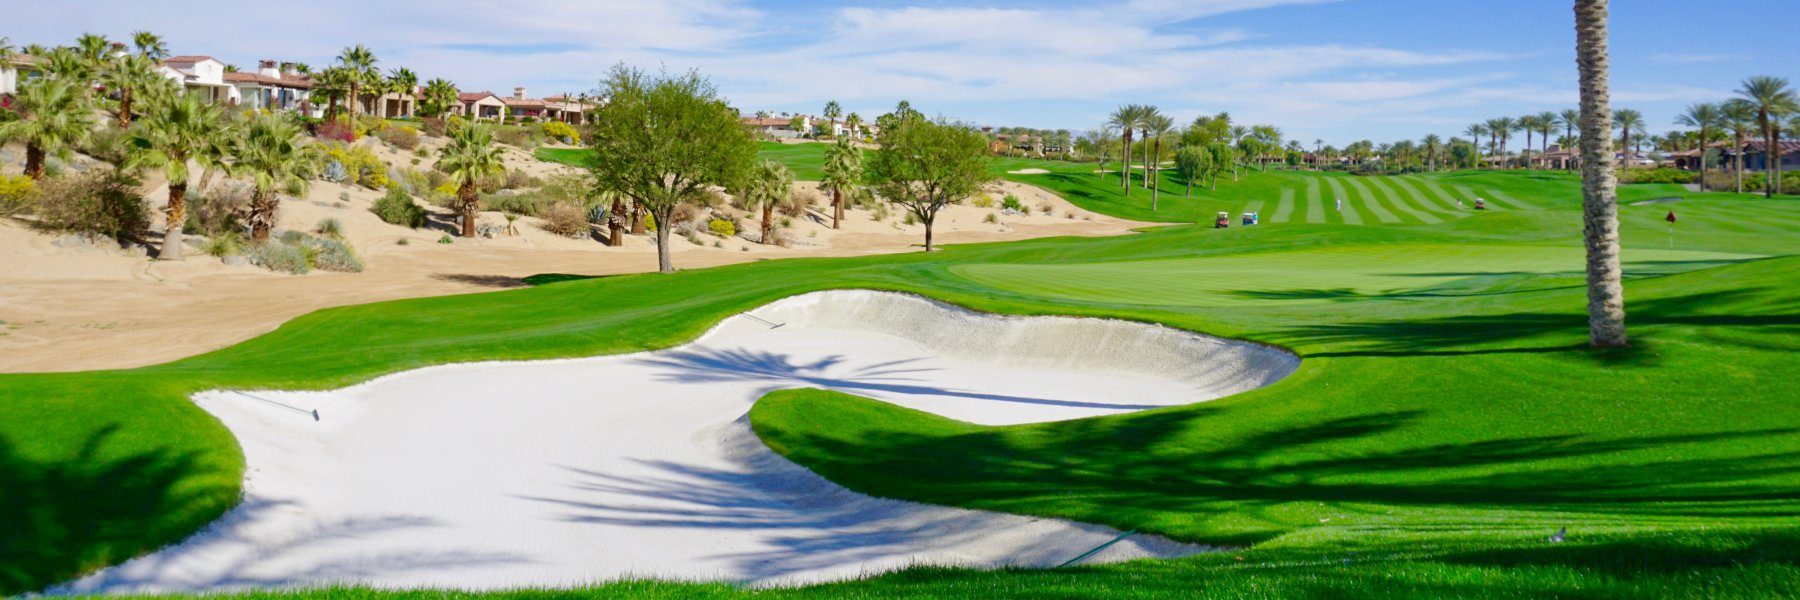 Toscana Country Club is a community of homes in Indian Wells, California